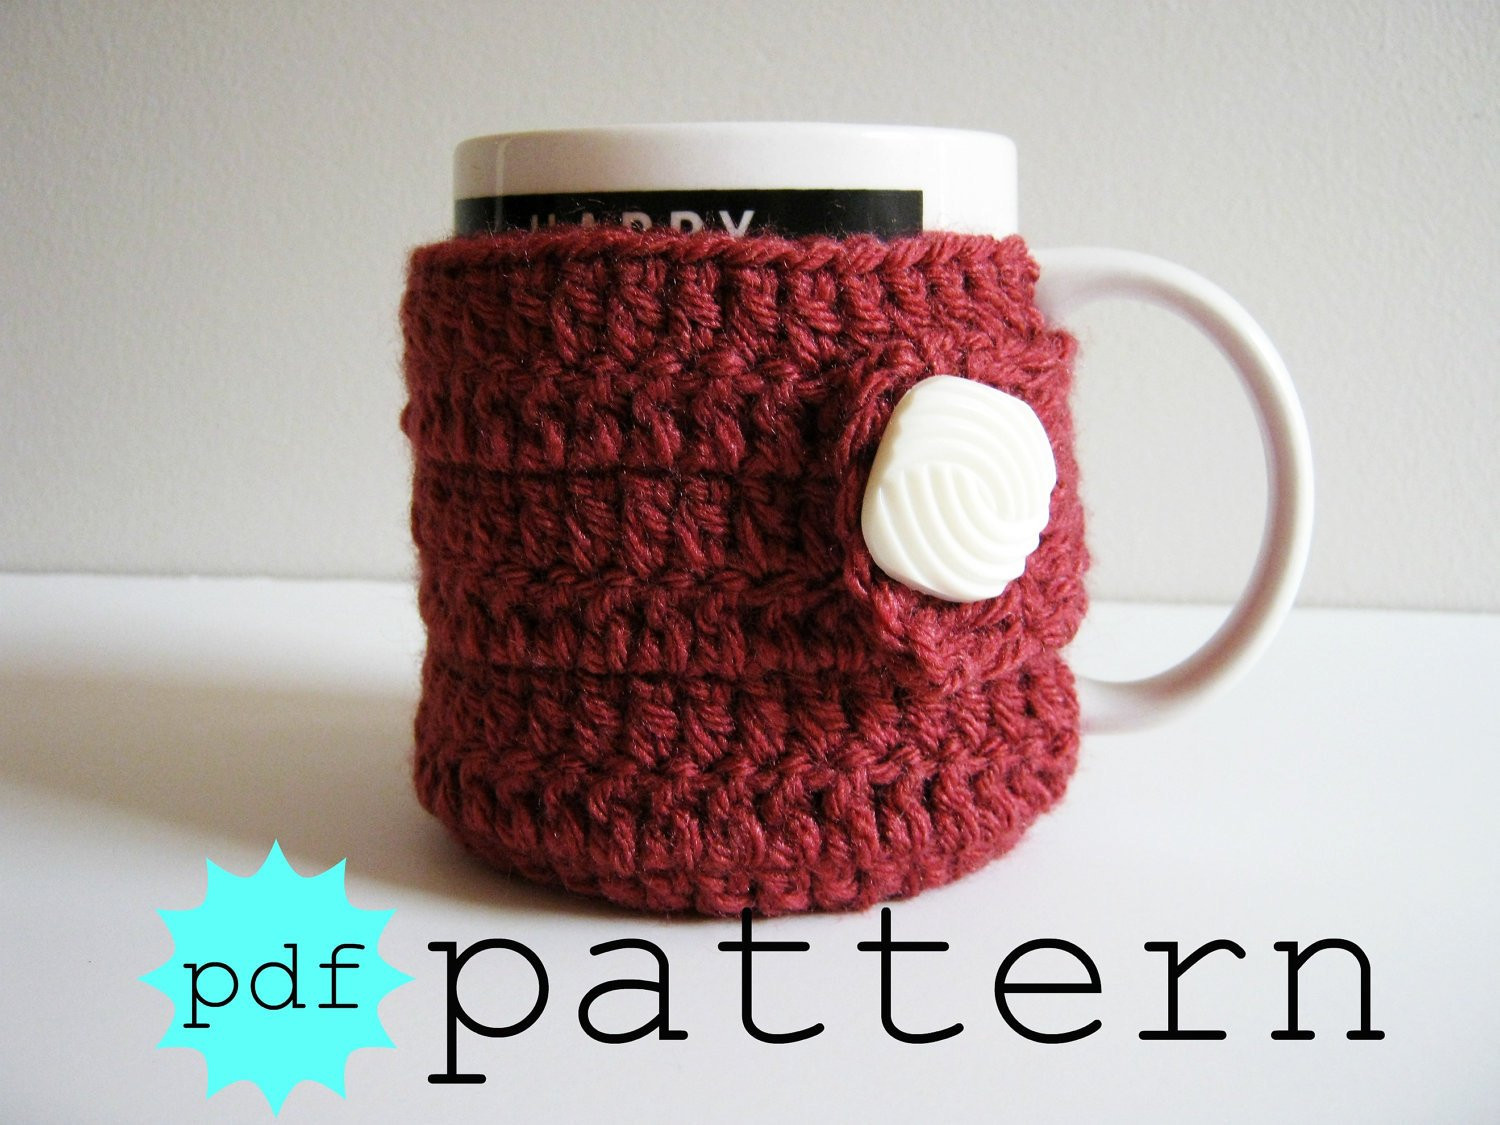 Crochet Coffee Cup Cozy Luxury Pdf Crochet Pattern Coffee Mug Cozy with button by Of Crochet Coffee Cup Cozy Elegant Wooftastic Puppy Crochet Coffee Cozy